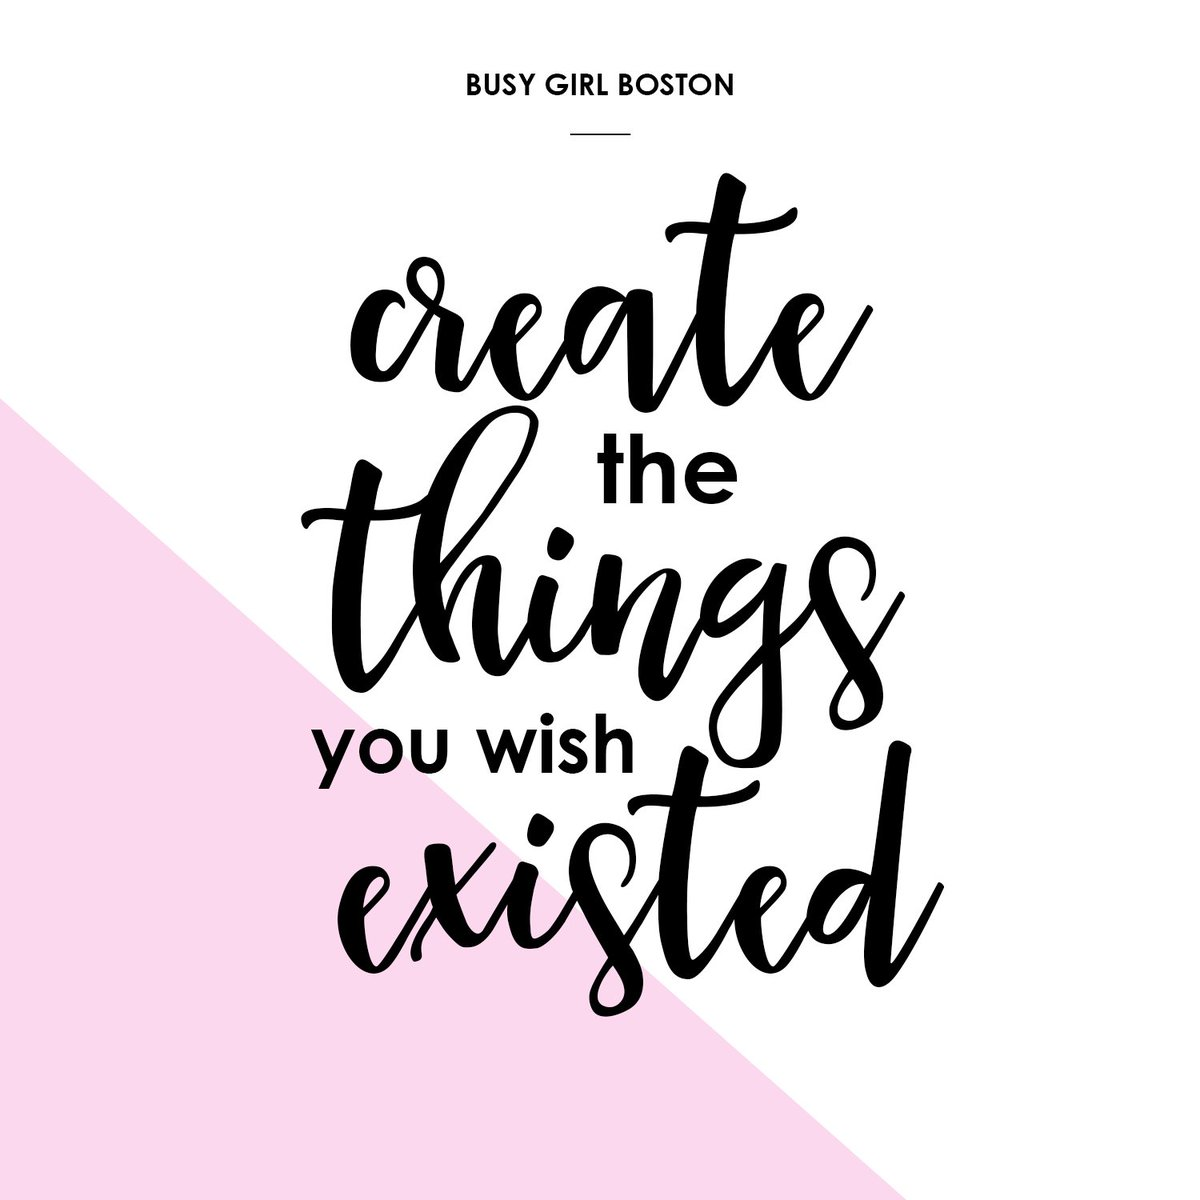 What do you want to create? #dreamitdoit #busygirlboston #busygirls #bostonbloggers #create #girlboss #Motivation #WomenUnshackled #bossbabepic.twitter.com/7gcFxna3kY